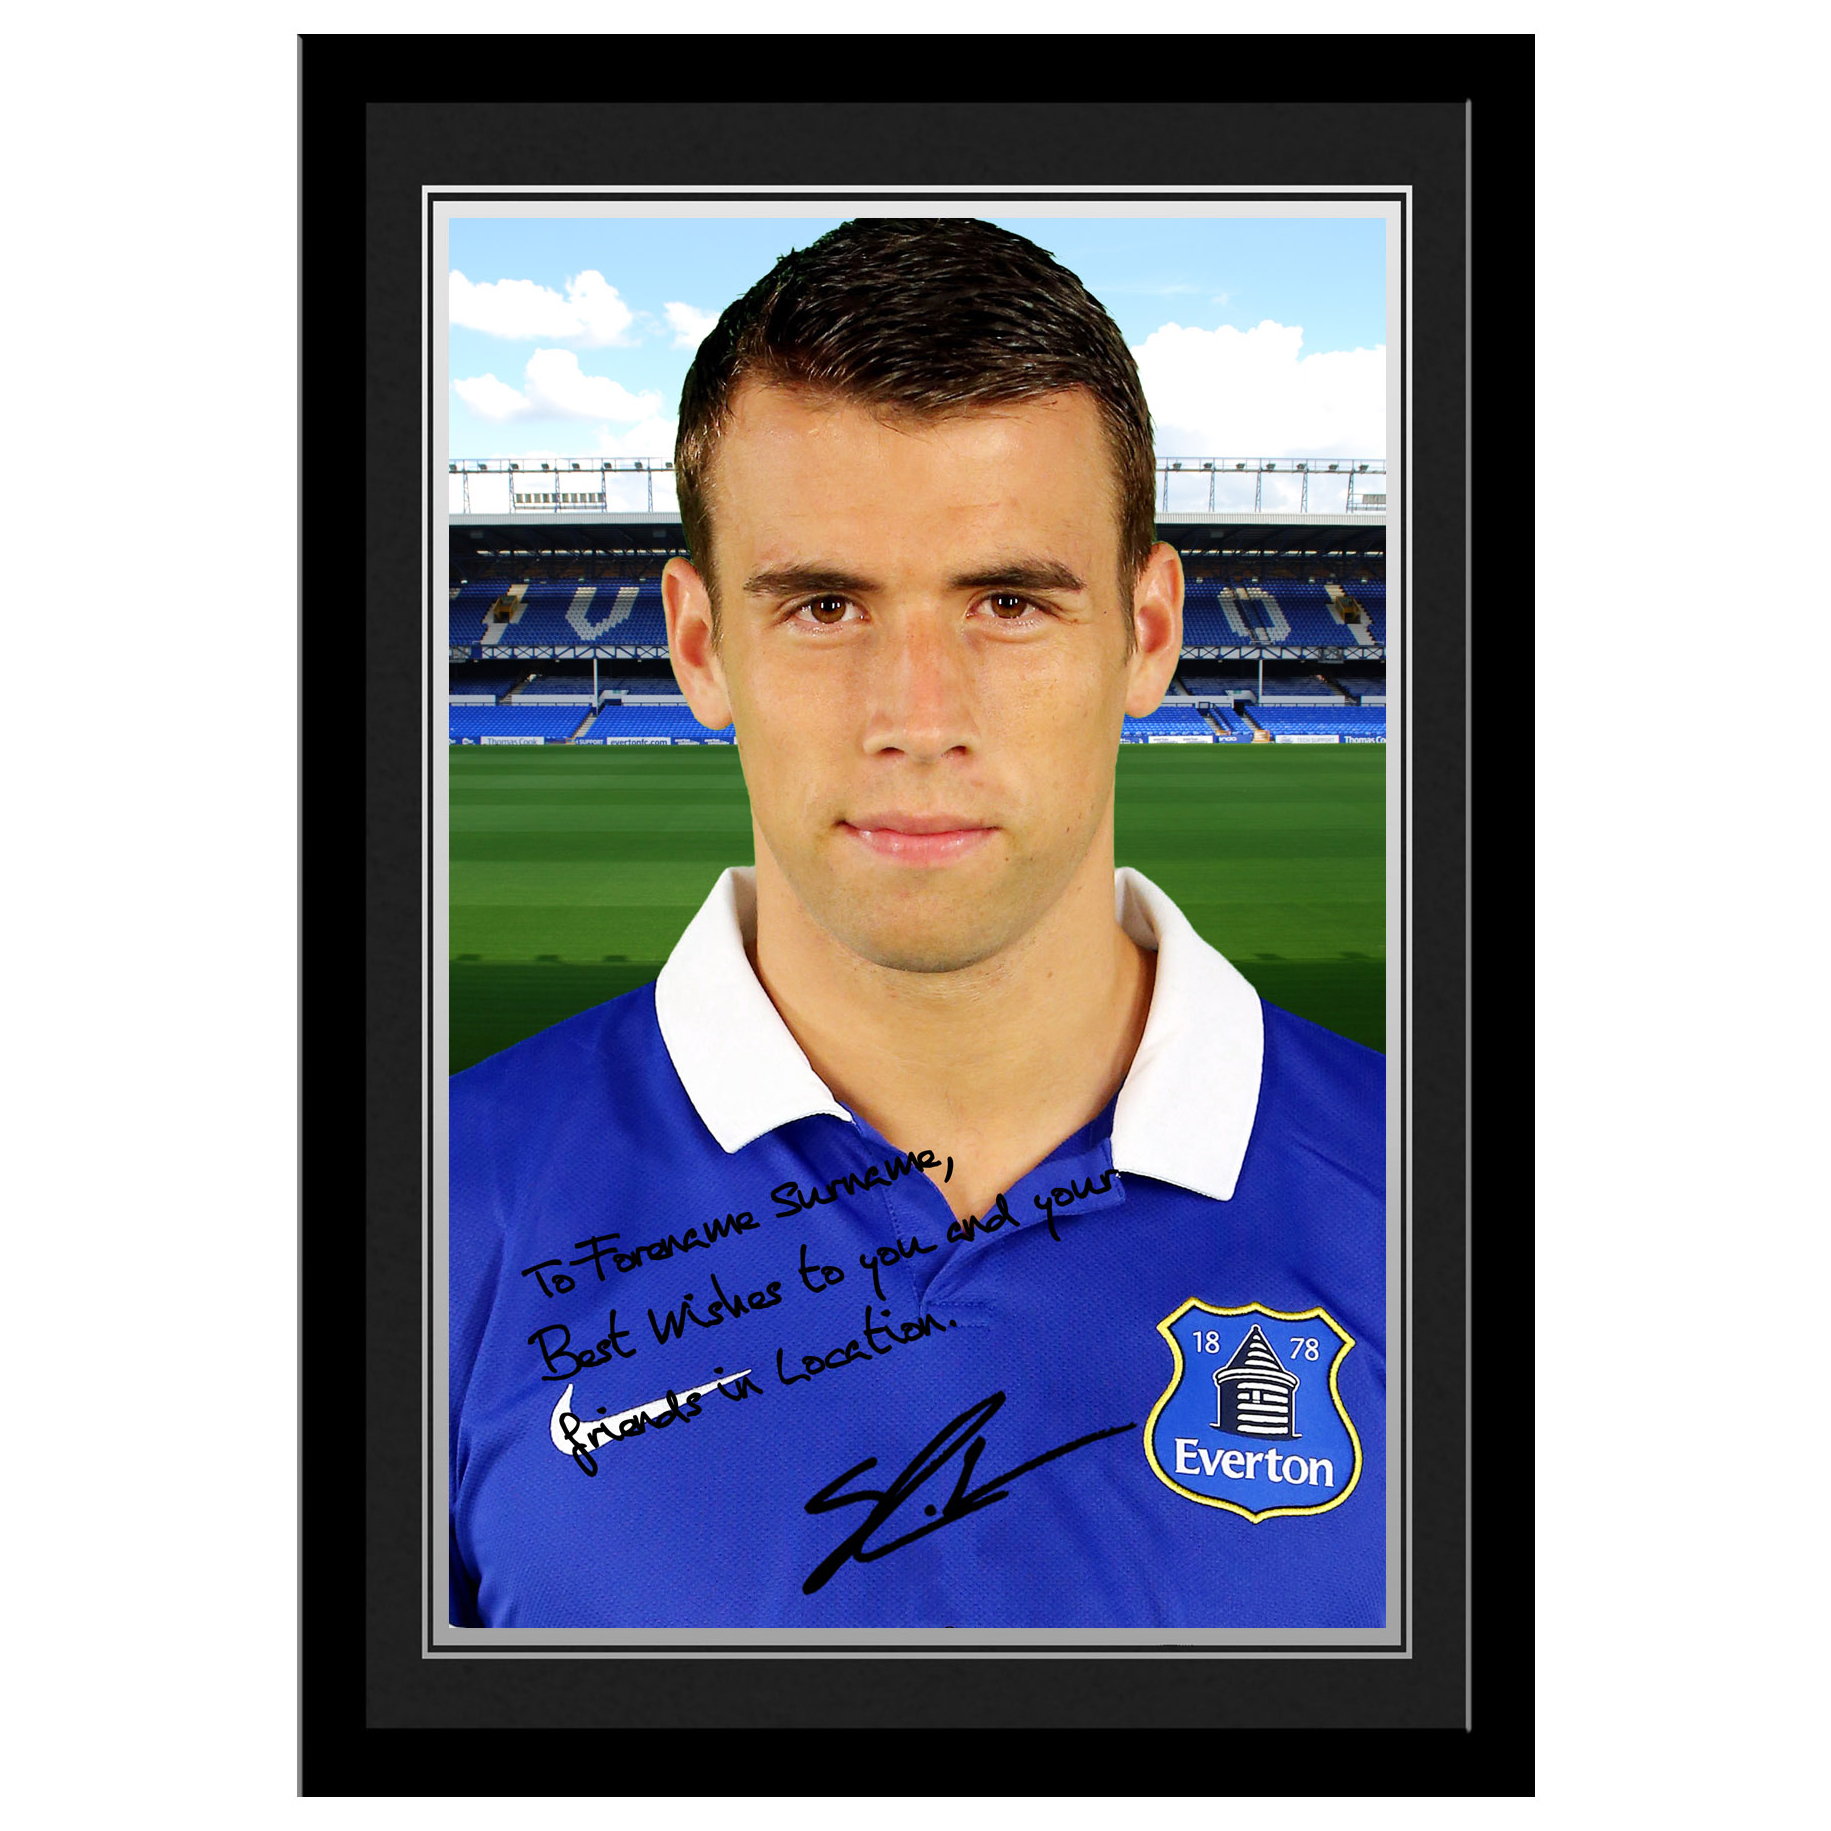 Everton Personalised Signature Photo Frame - Coleman